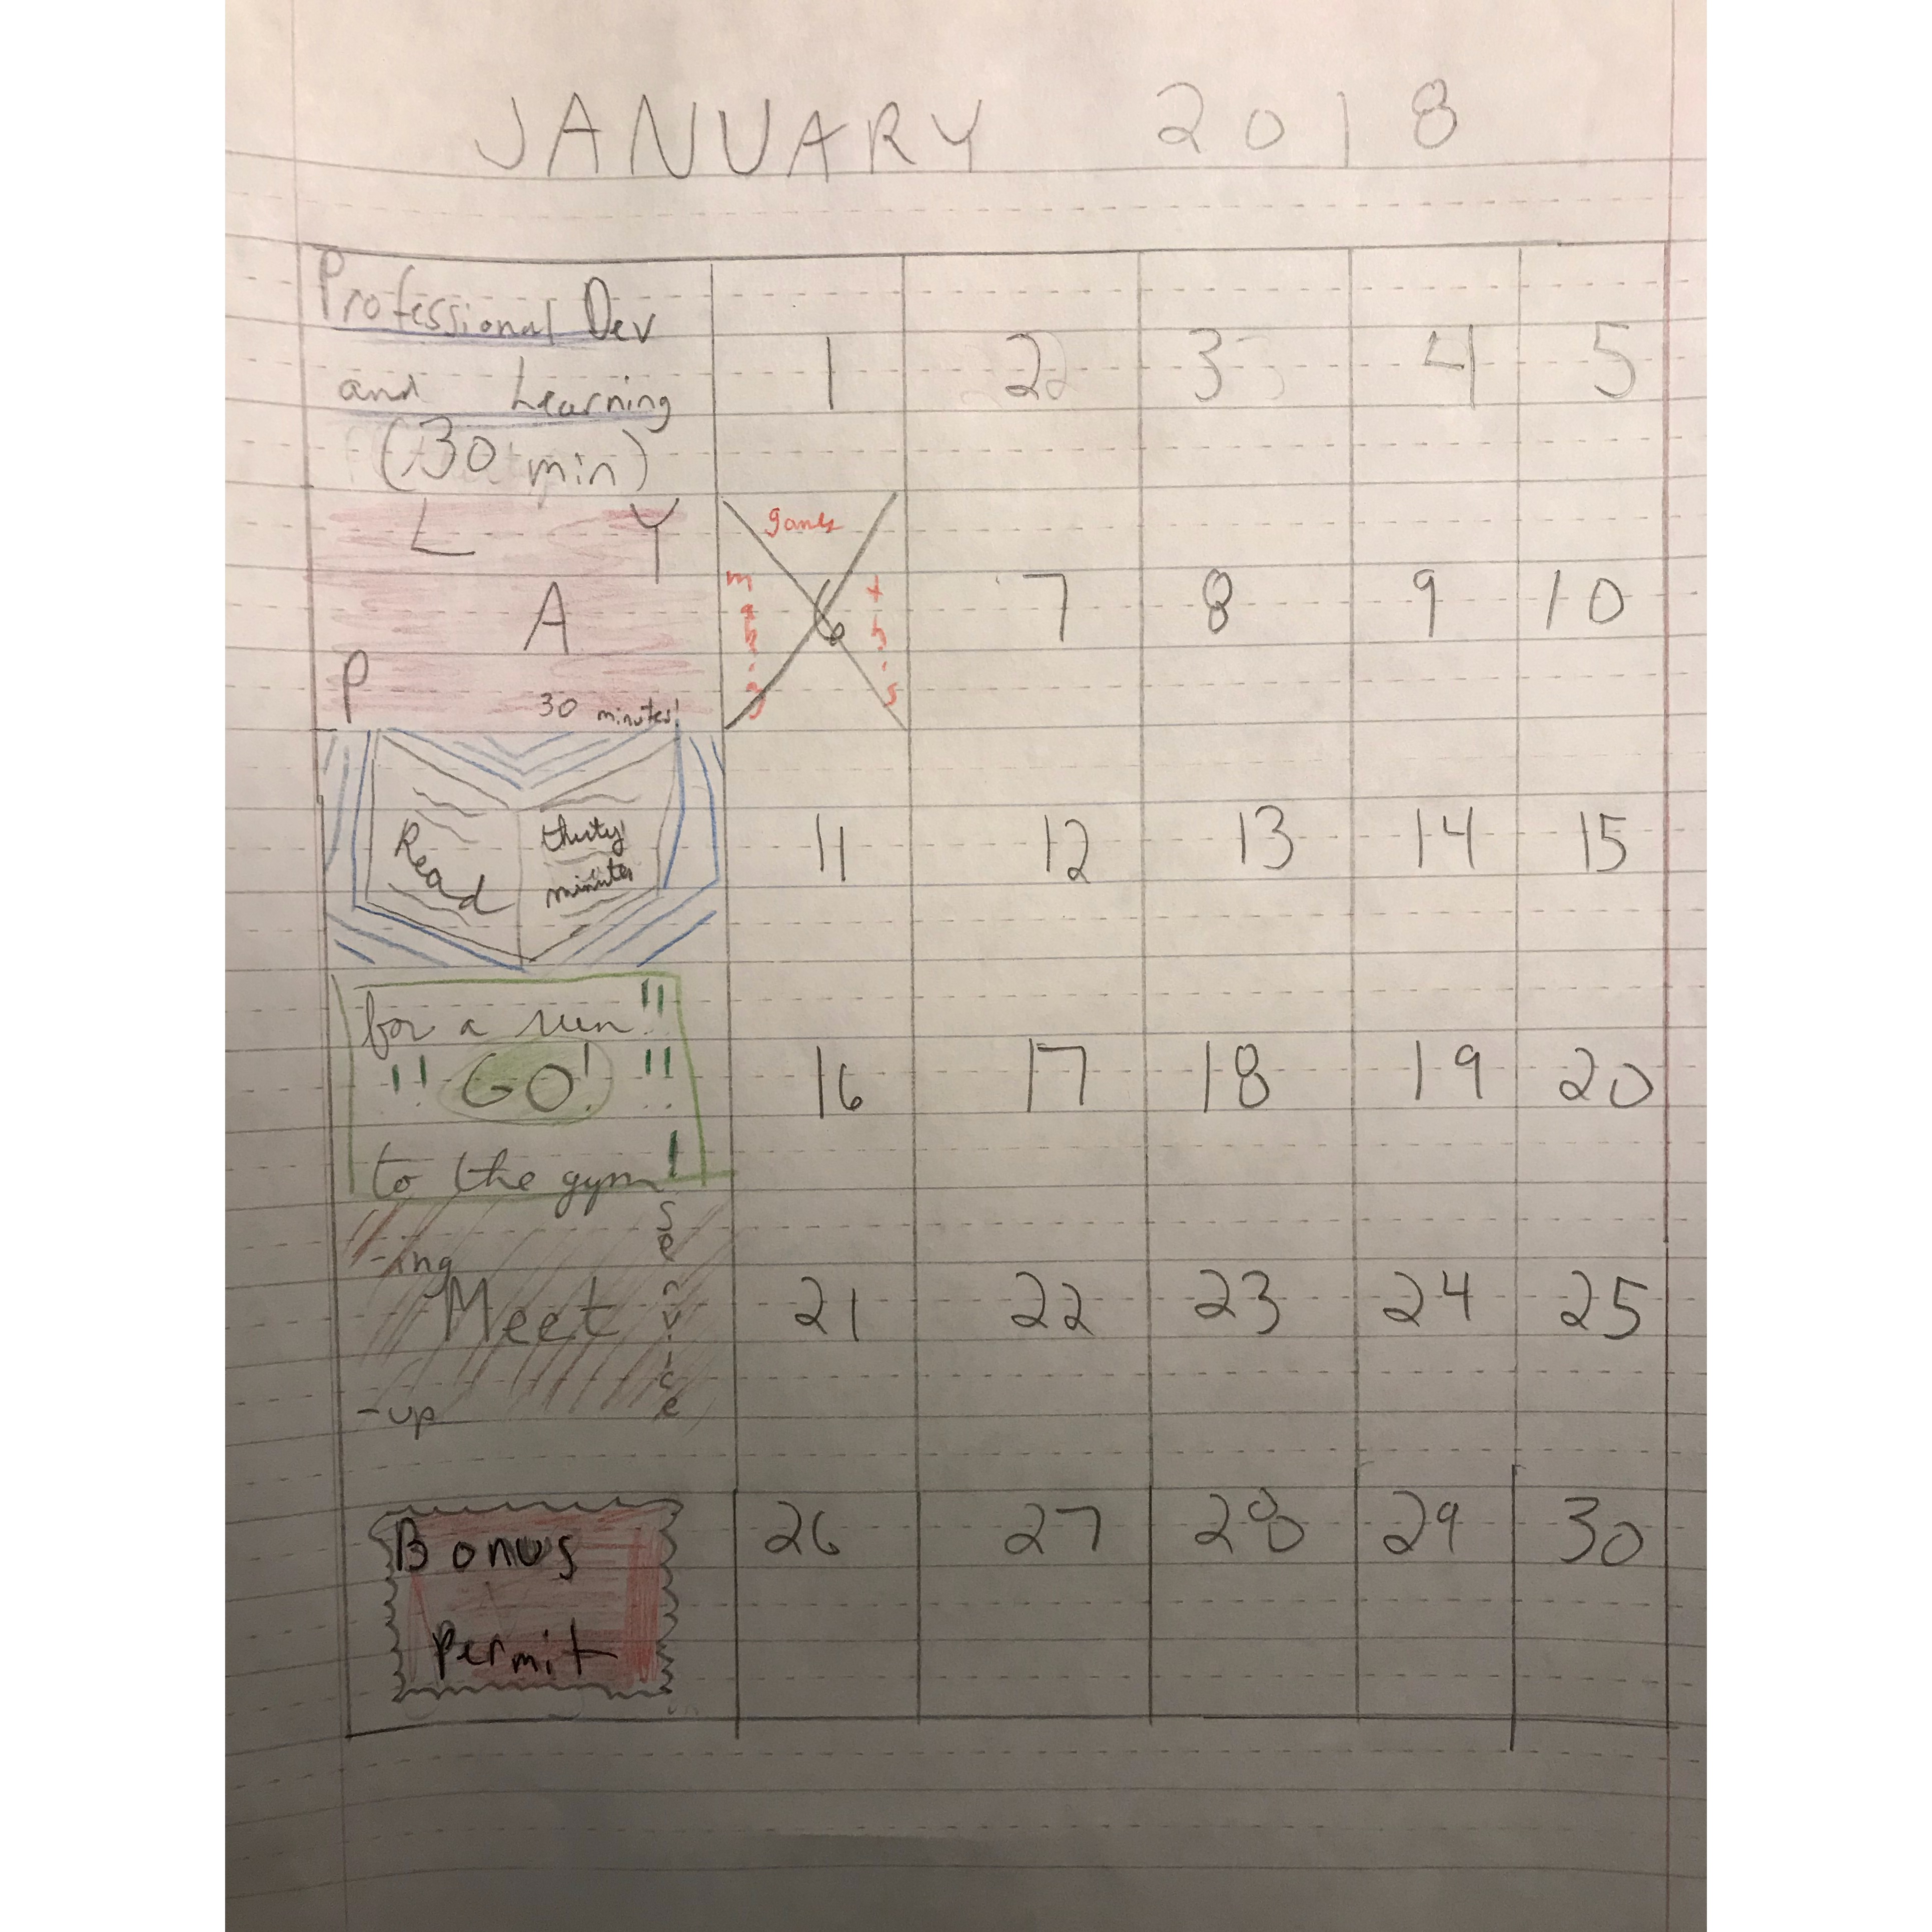 calendar for jan 2018 of the above categories drawn on handwriting paper